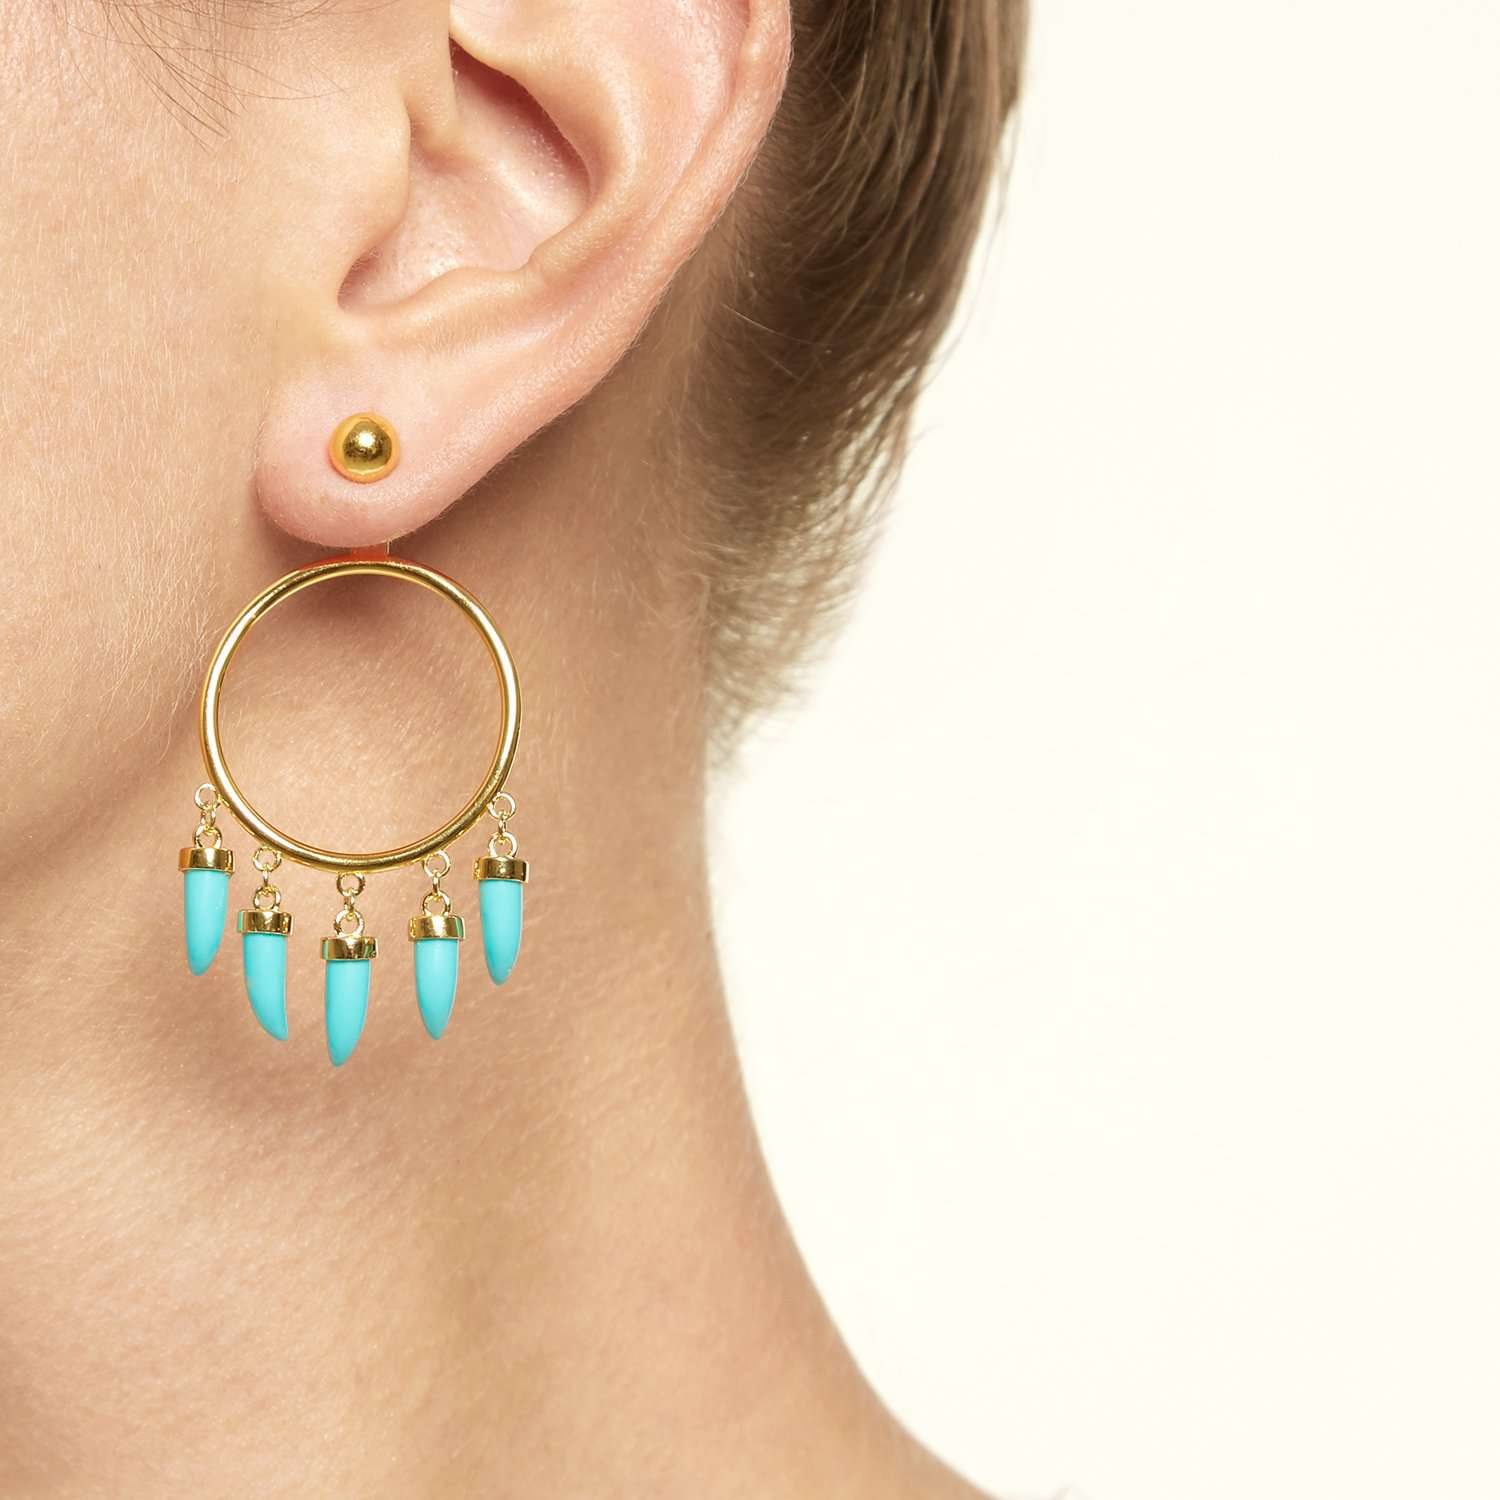 Shop Earrings with Turquoise Stones | ESHVI